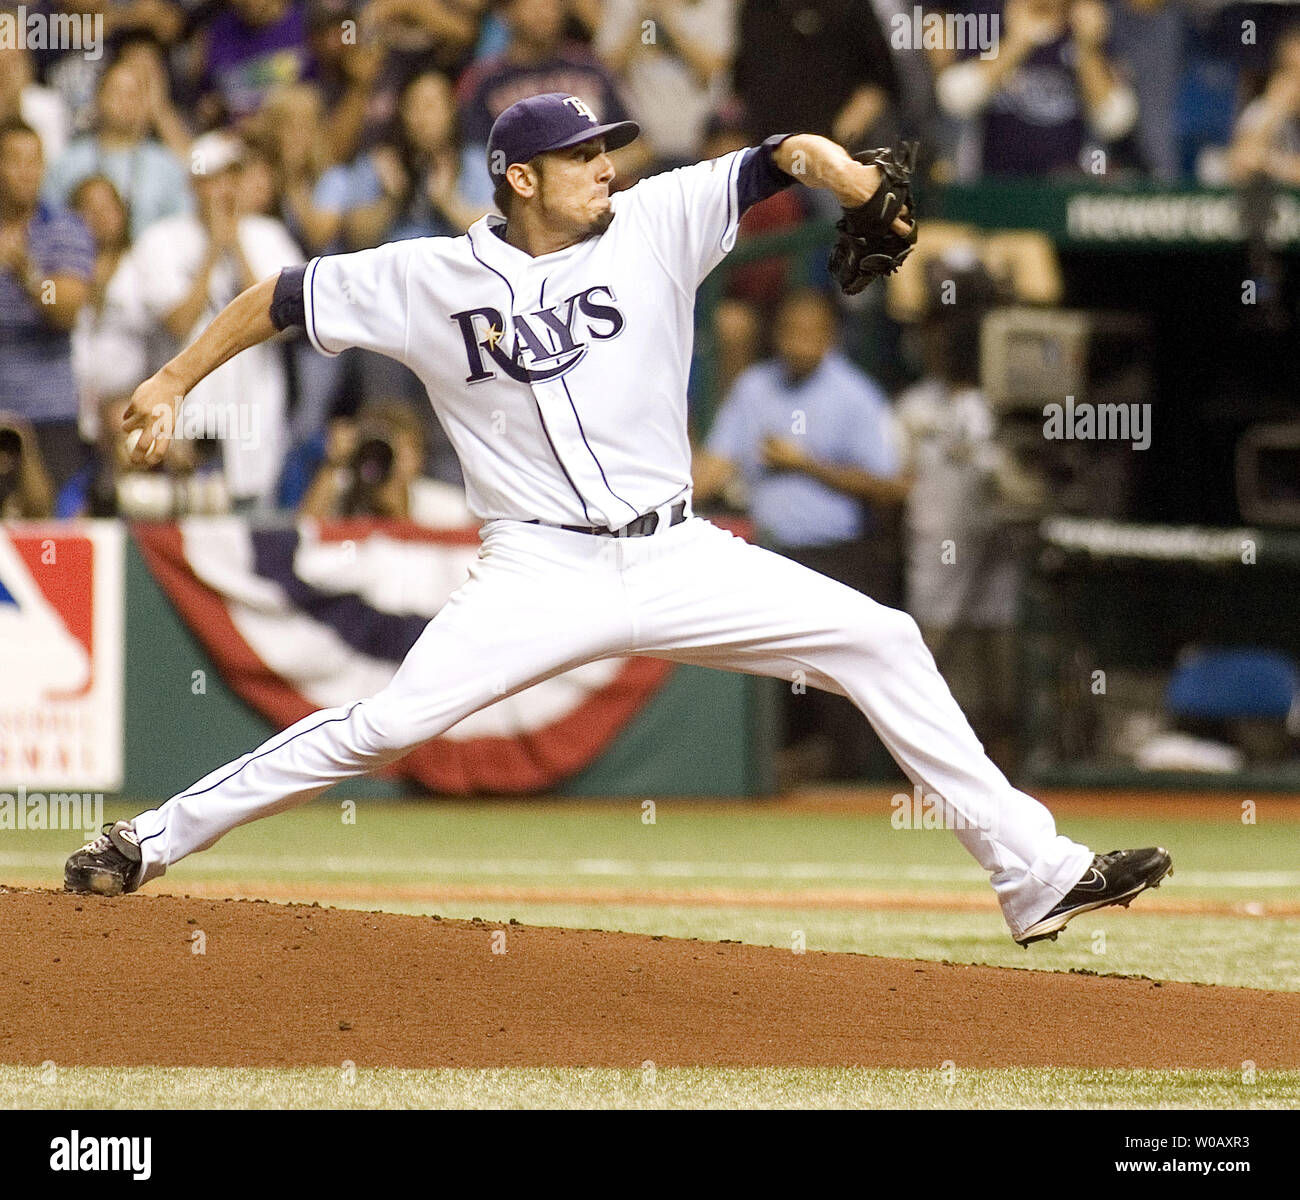 Tampa Bay Rays starting pitcher Matt Garza throws against the Boston Red Sox during game seven of the American League Championship Series at Tropicana Field in St. Petersburg, Florida on October 19, 2008.  (UPI Photo/David Mills) Stock Photo